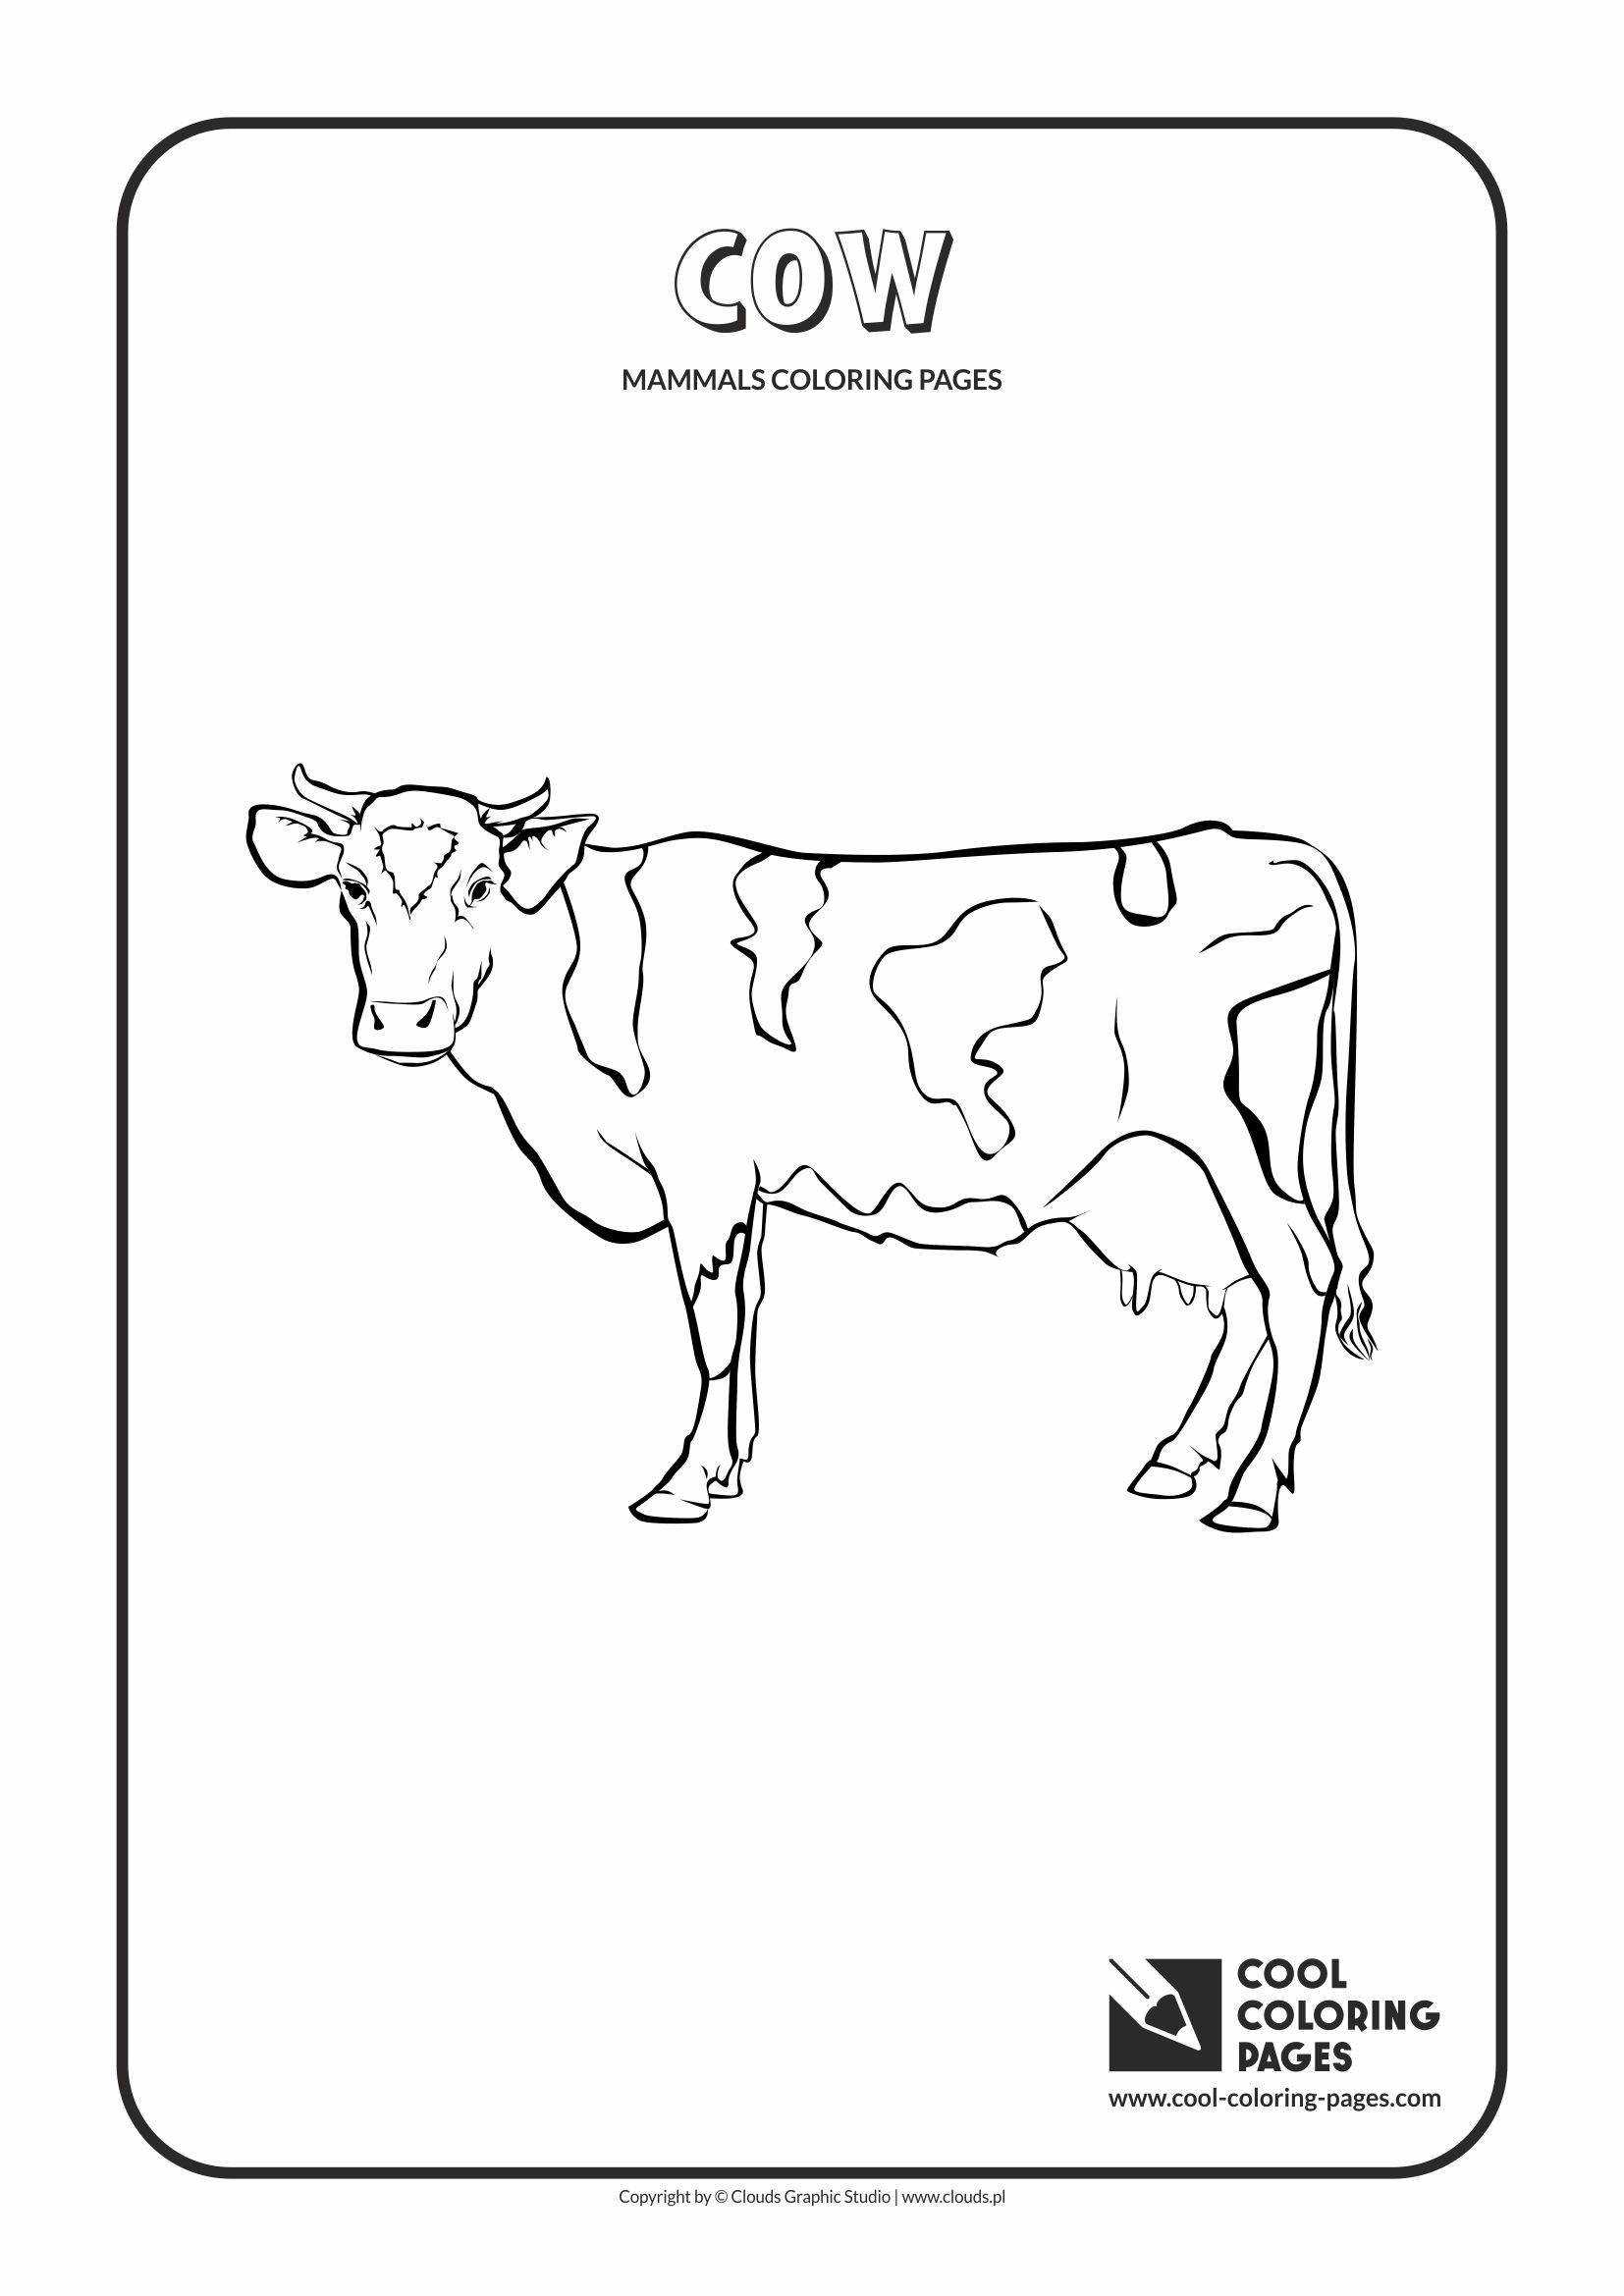 Cool Coloring Pages Cow coloring